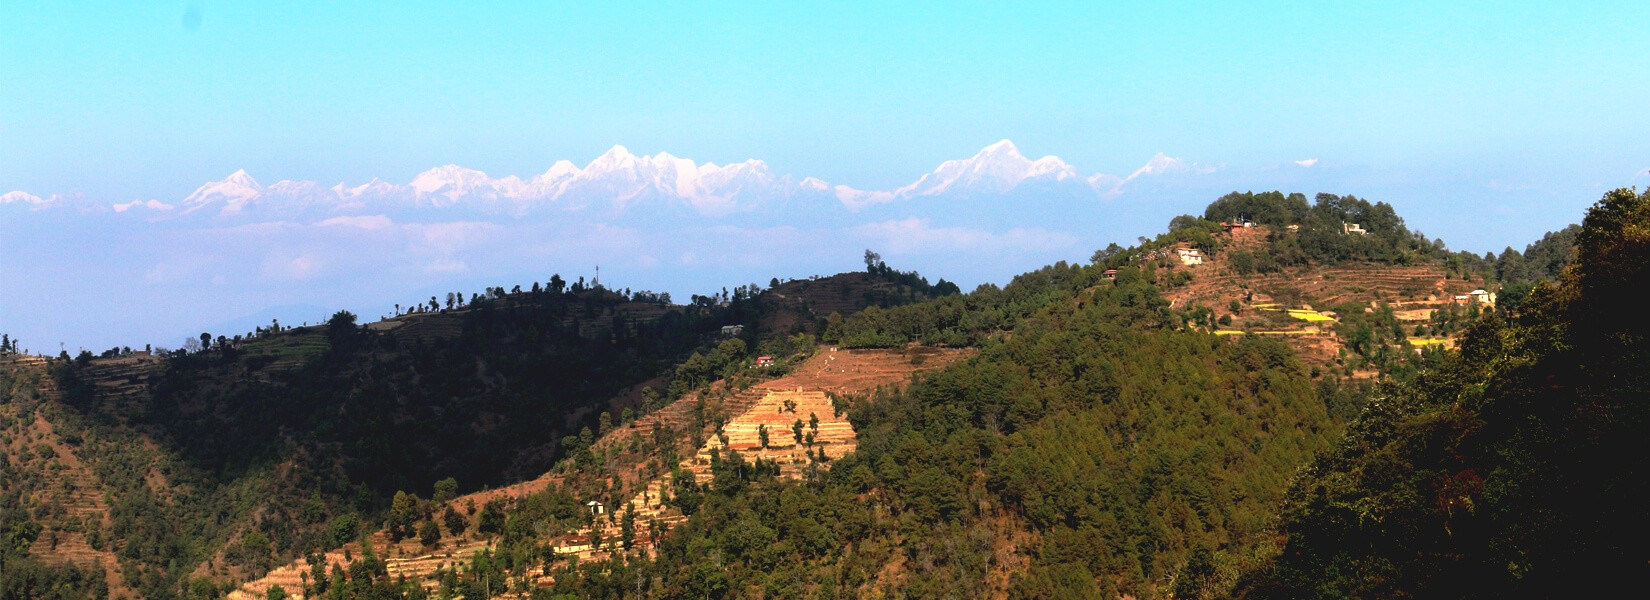 Nepal culture hiking tour